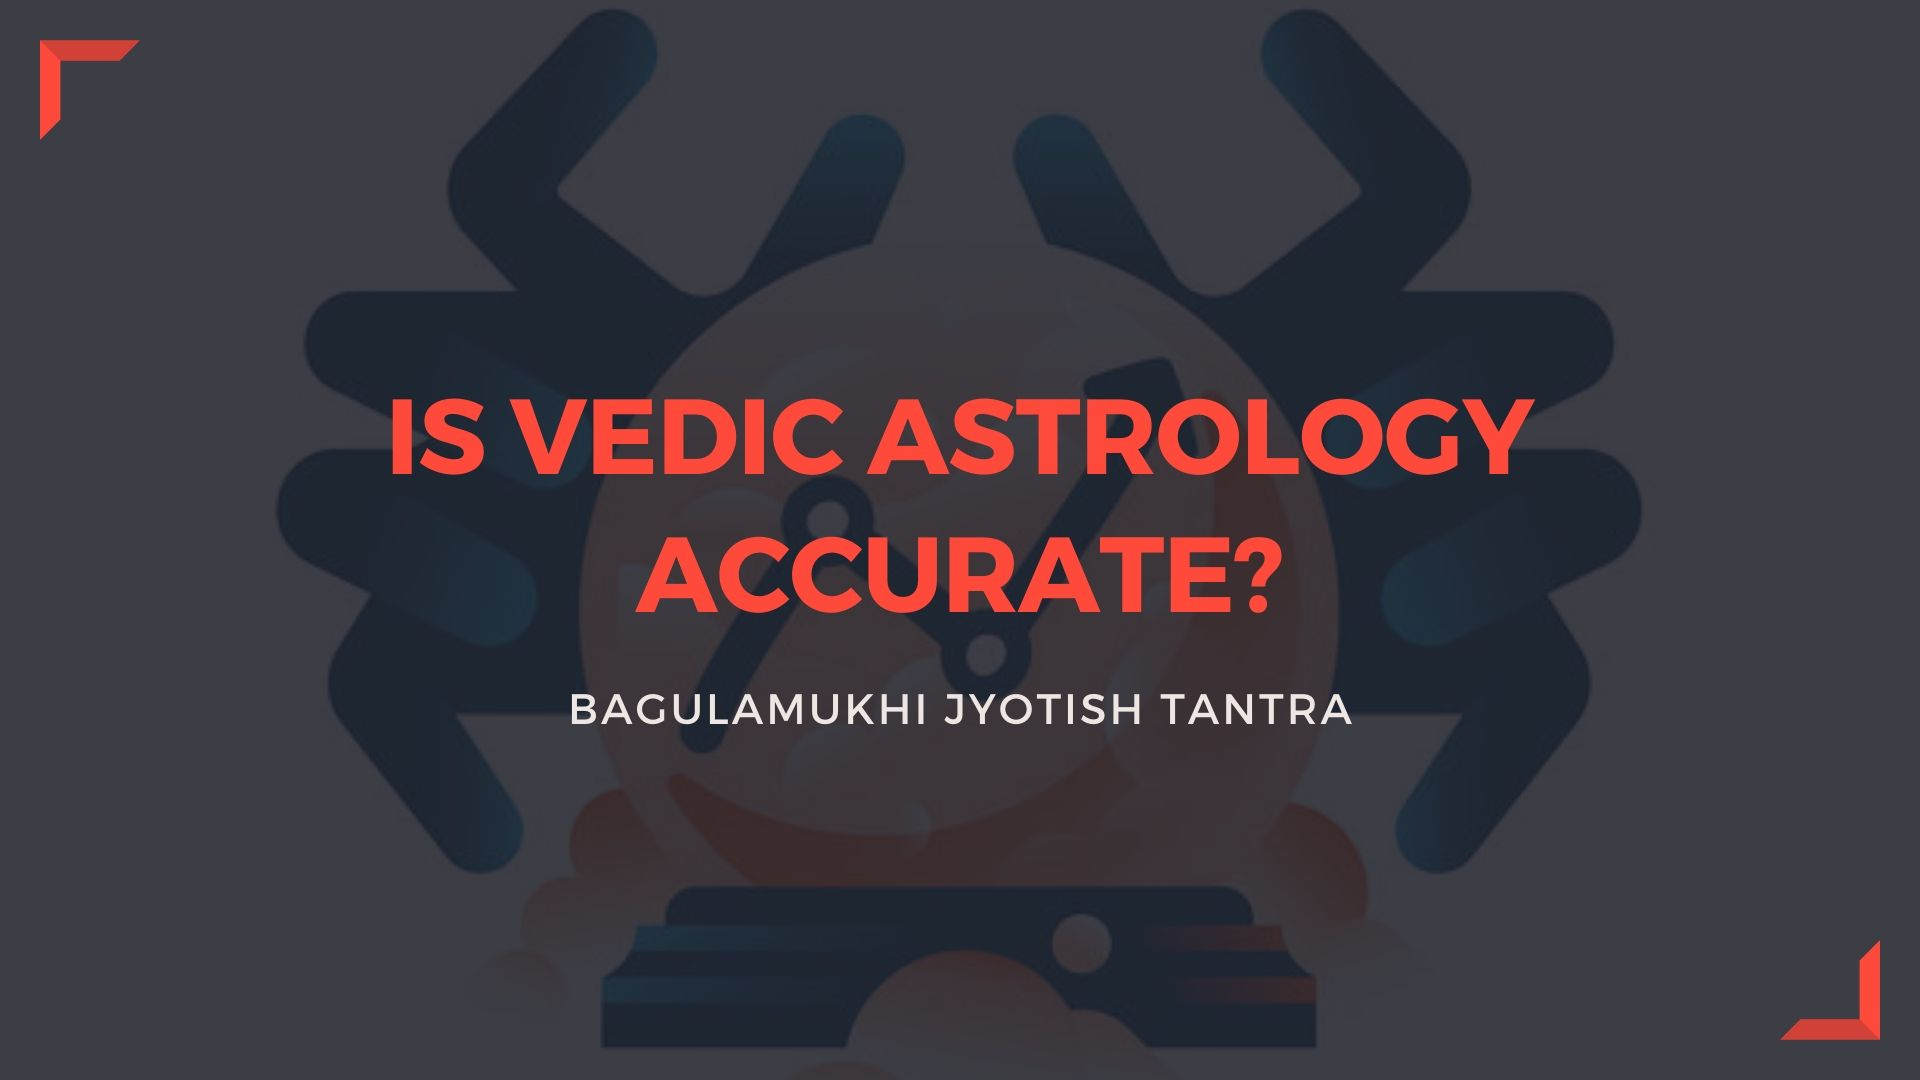 Vedic Astrology Accurate